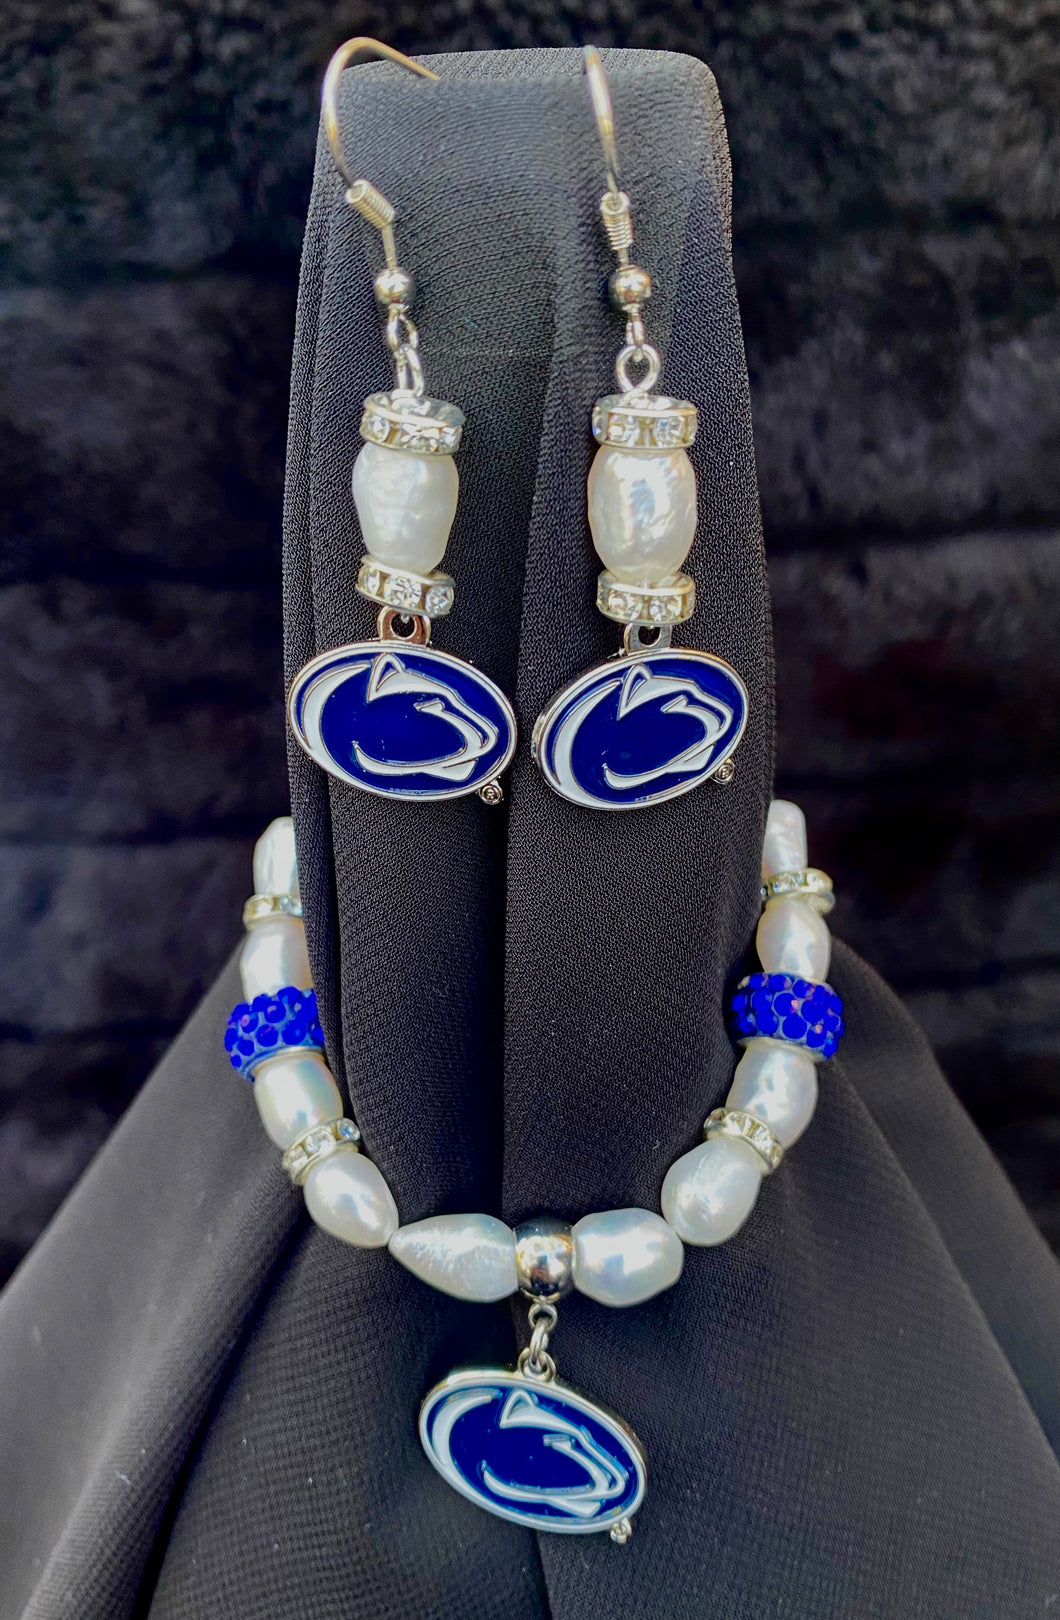 Penn State Nittany Lions Logo Pearl Earrings and bracelet set